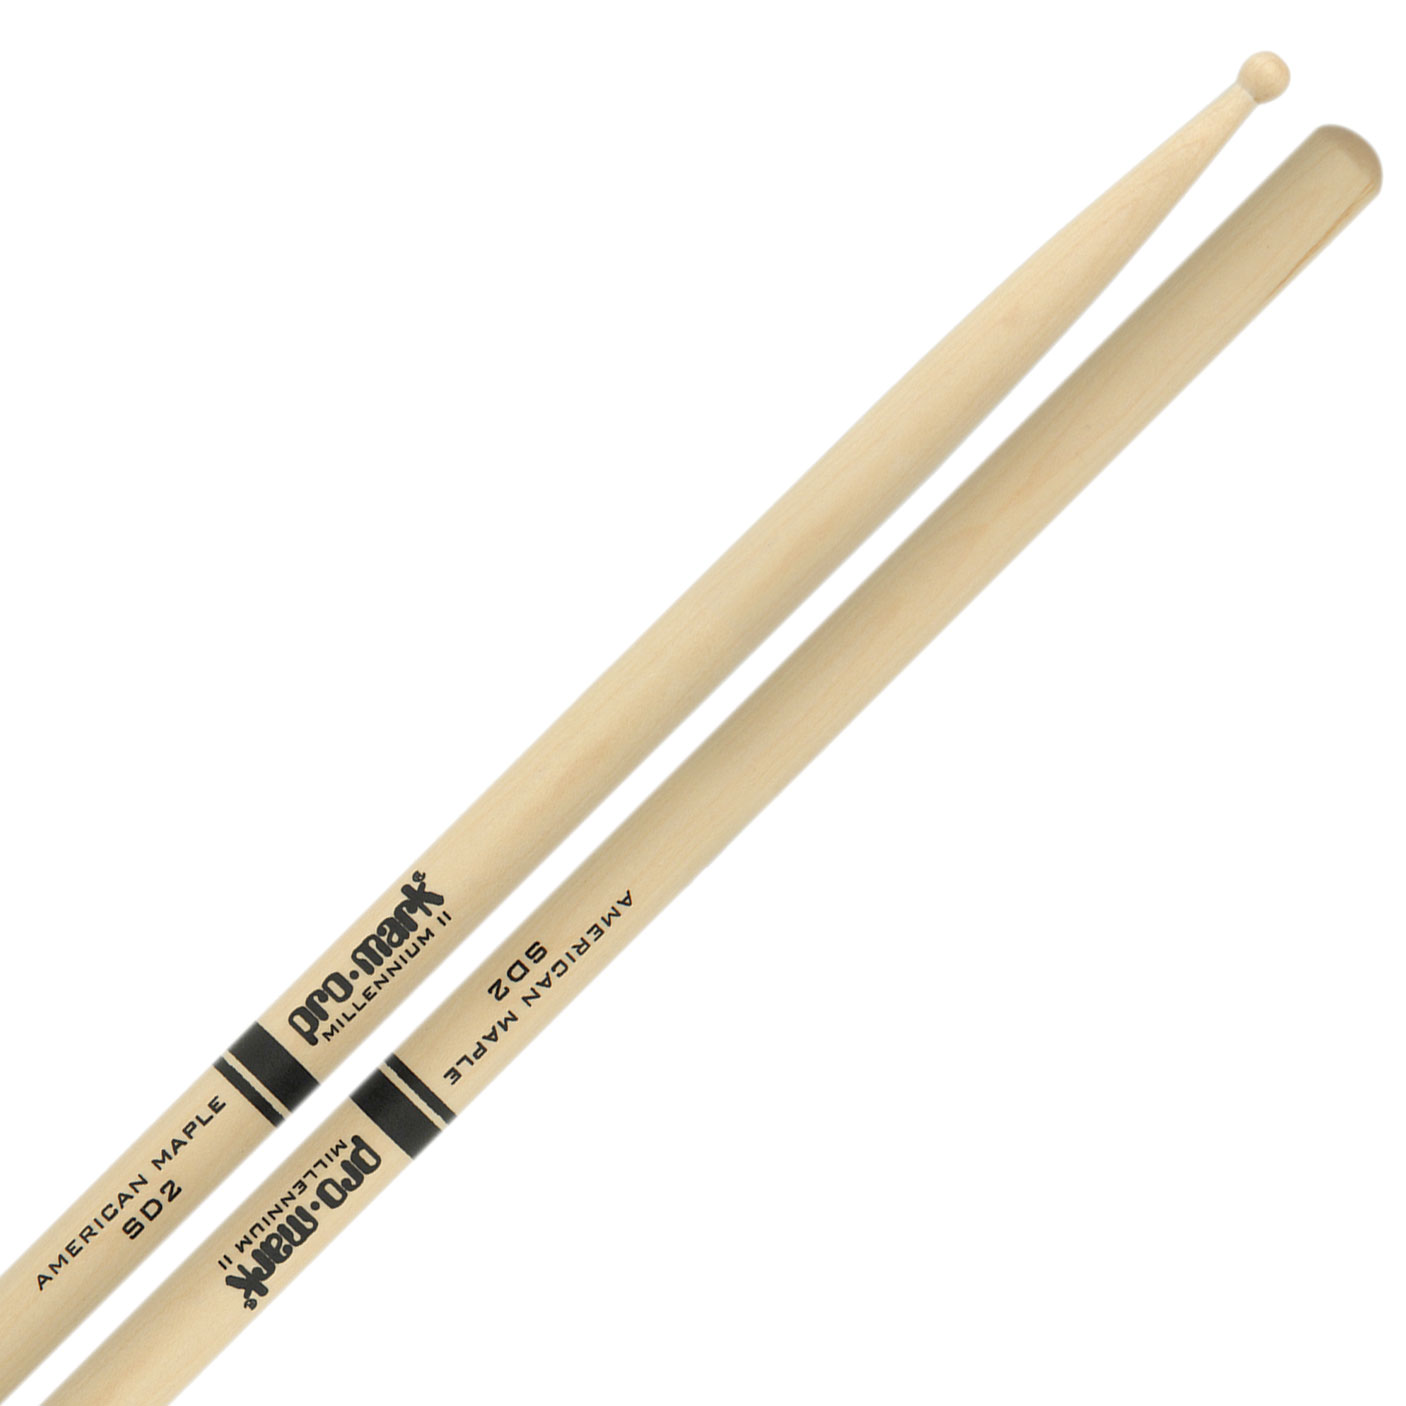 http://s4.lonestarpercussion.com/resize/images/product-image/ProMark-SD2W.jpg